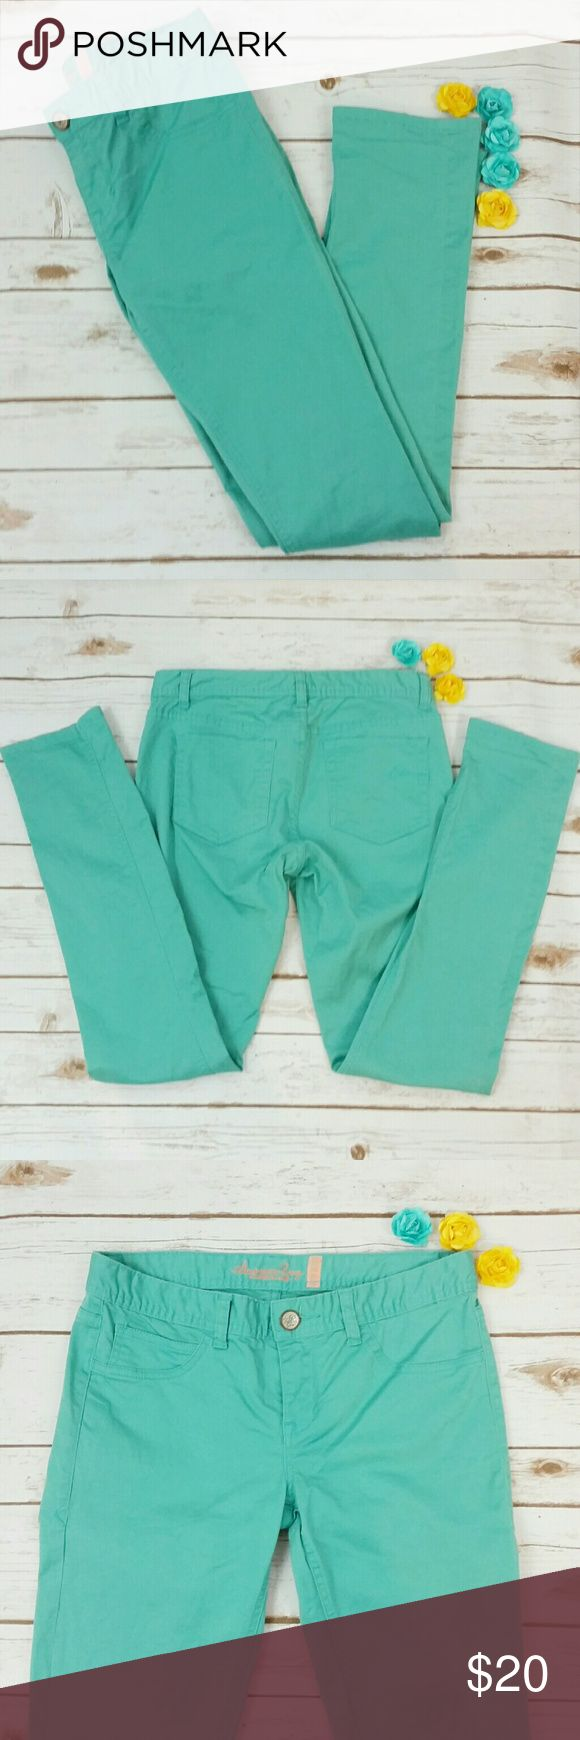 """American Rag teal curvy skinny jeans These teal jeans are curvy skinny 5-R. Waist is approx 30"""", length is approx 39"""". 98% cotton, 2% spandex. American Rag Jeans Skinny"""